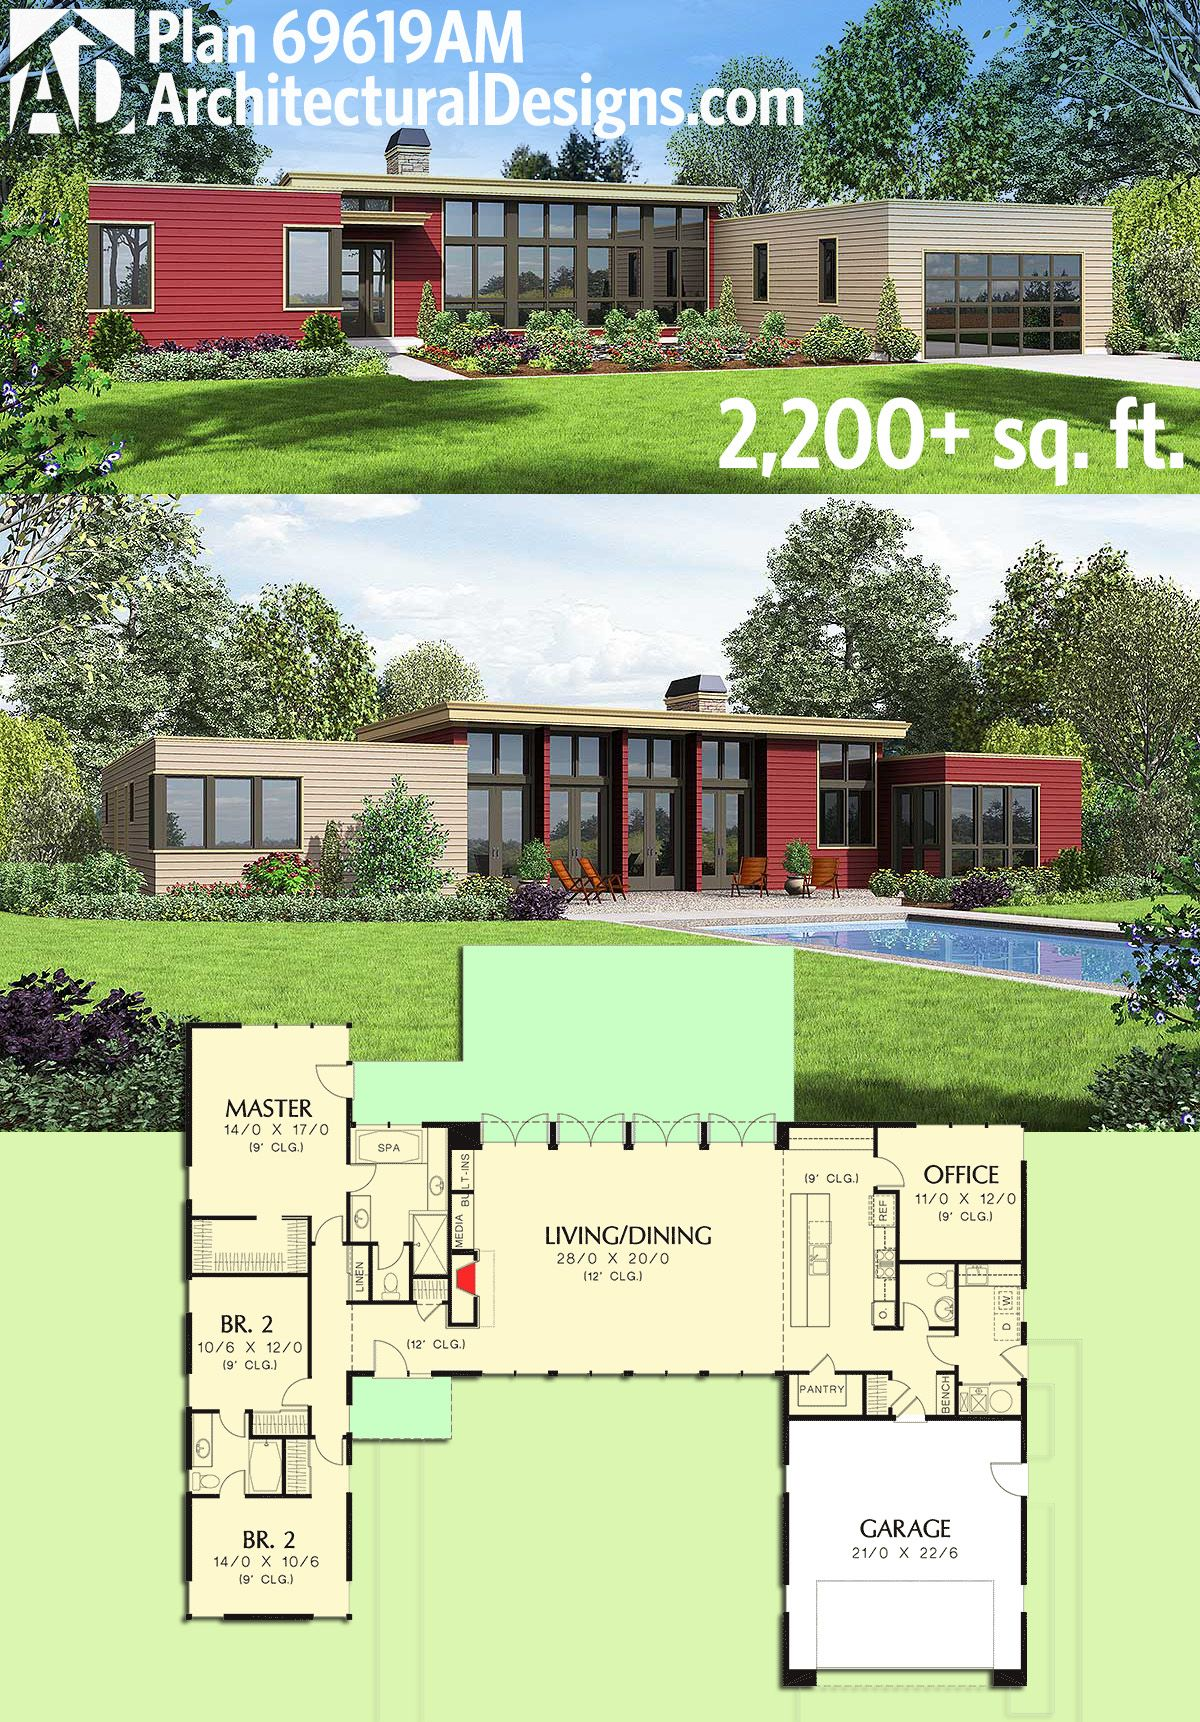 Contemporary Modern Home Plans plan 69619am: 3 bed modern house plan with open concept layout